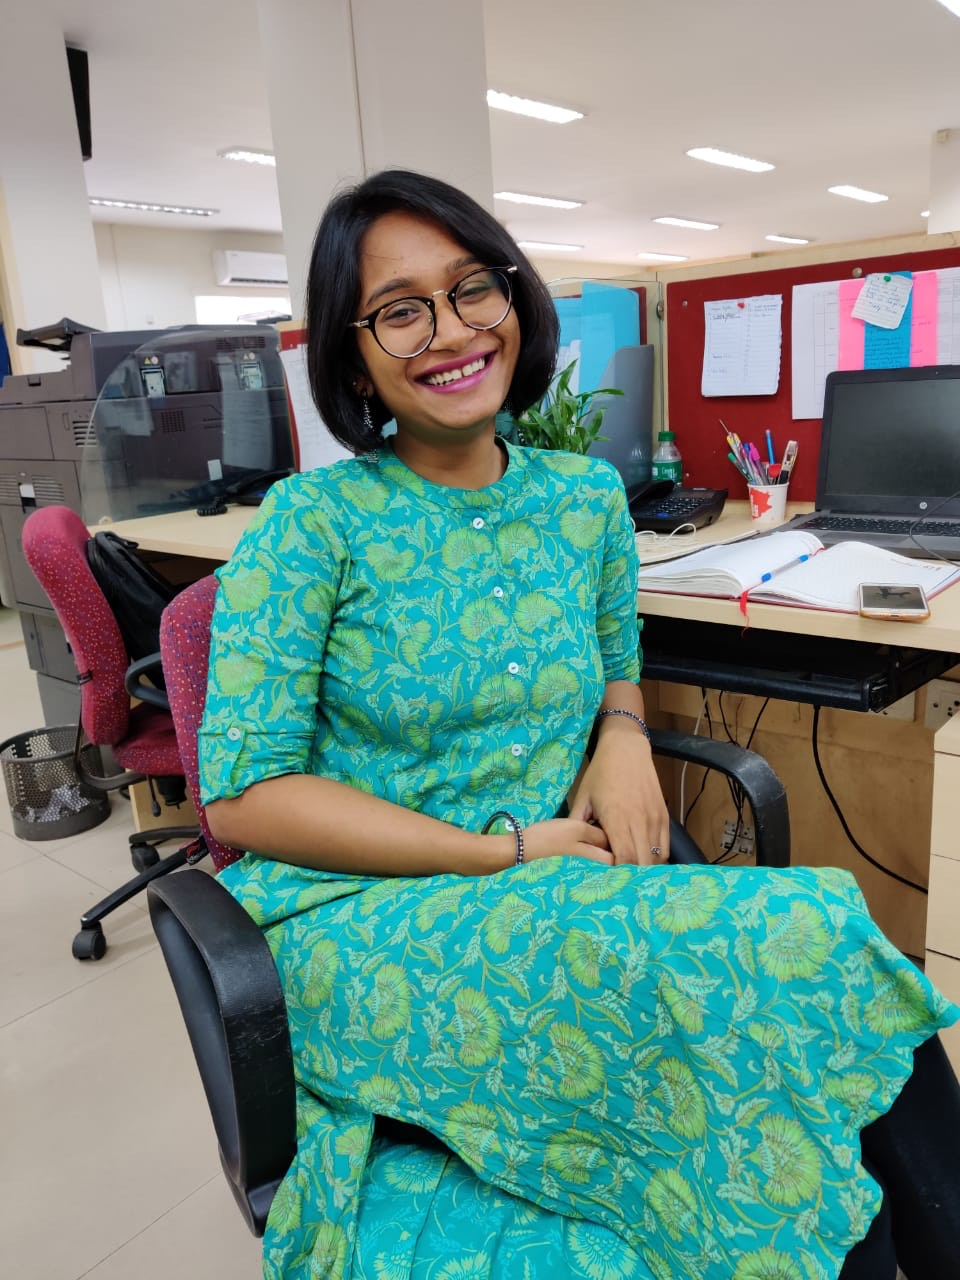 Meera Nazercompleted the European Masters in Law and Economics('18), a course she undertook right after completing her undergraduate degree from NUALS